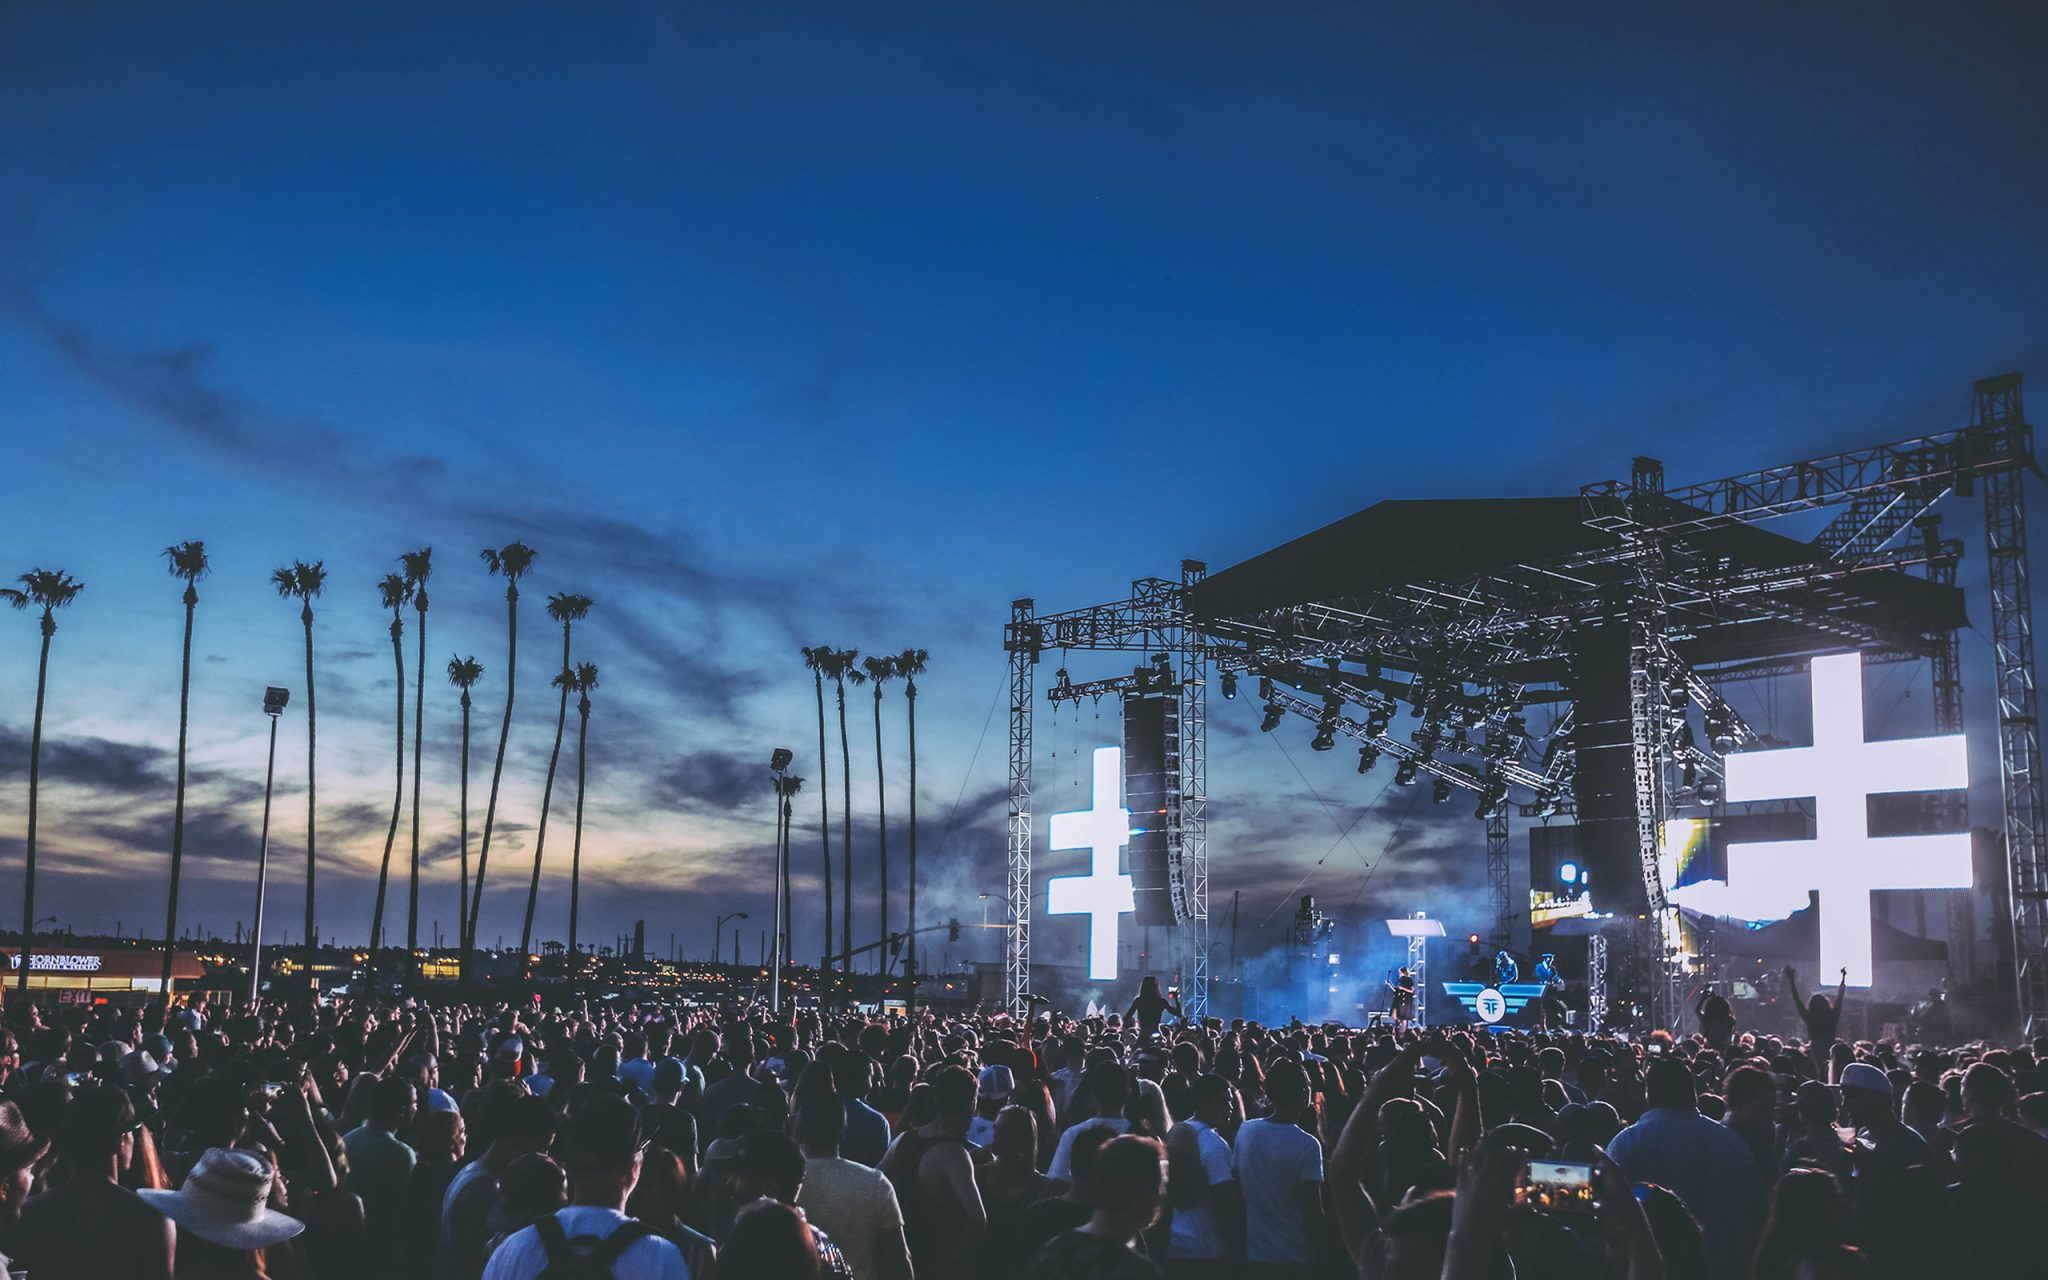 CRSSD Fest Desktop Background